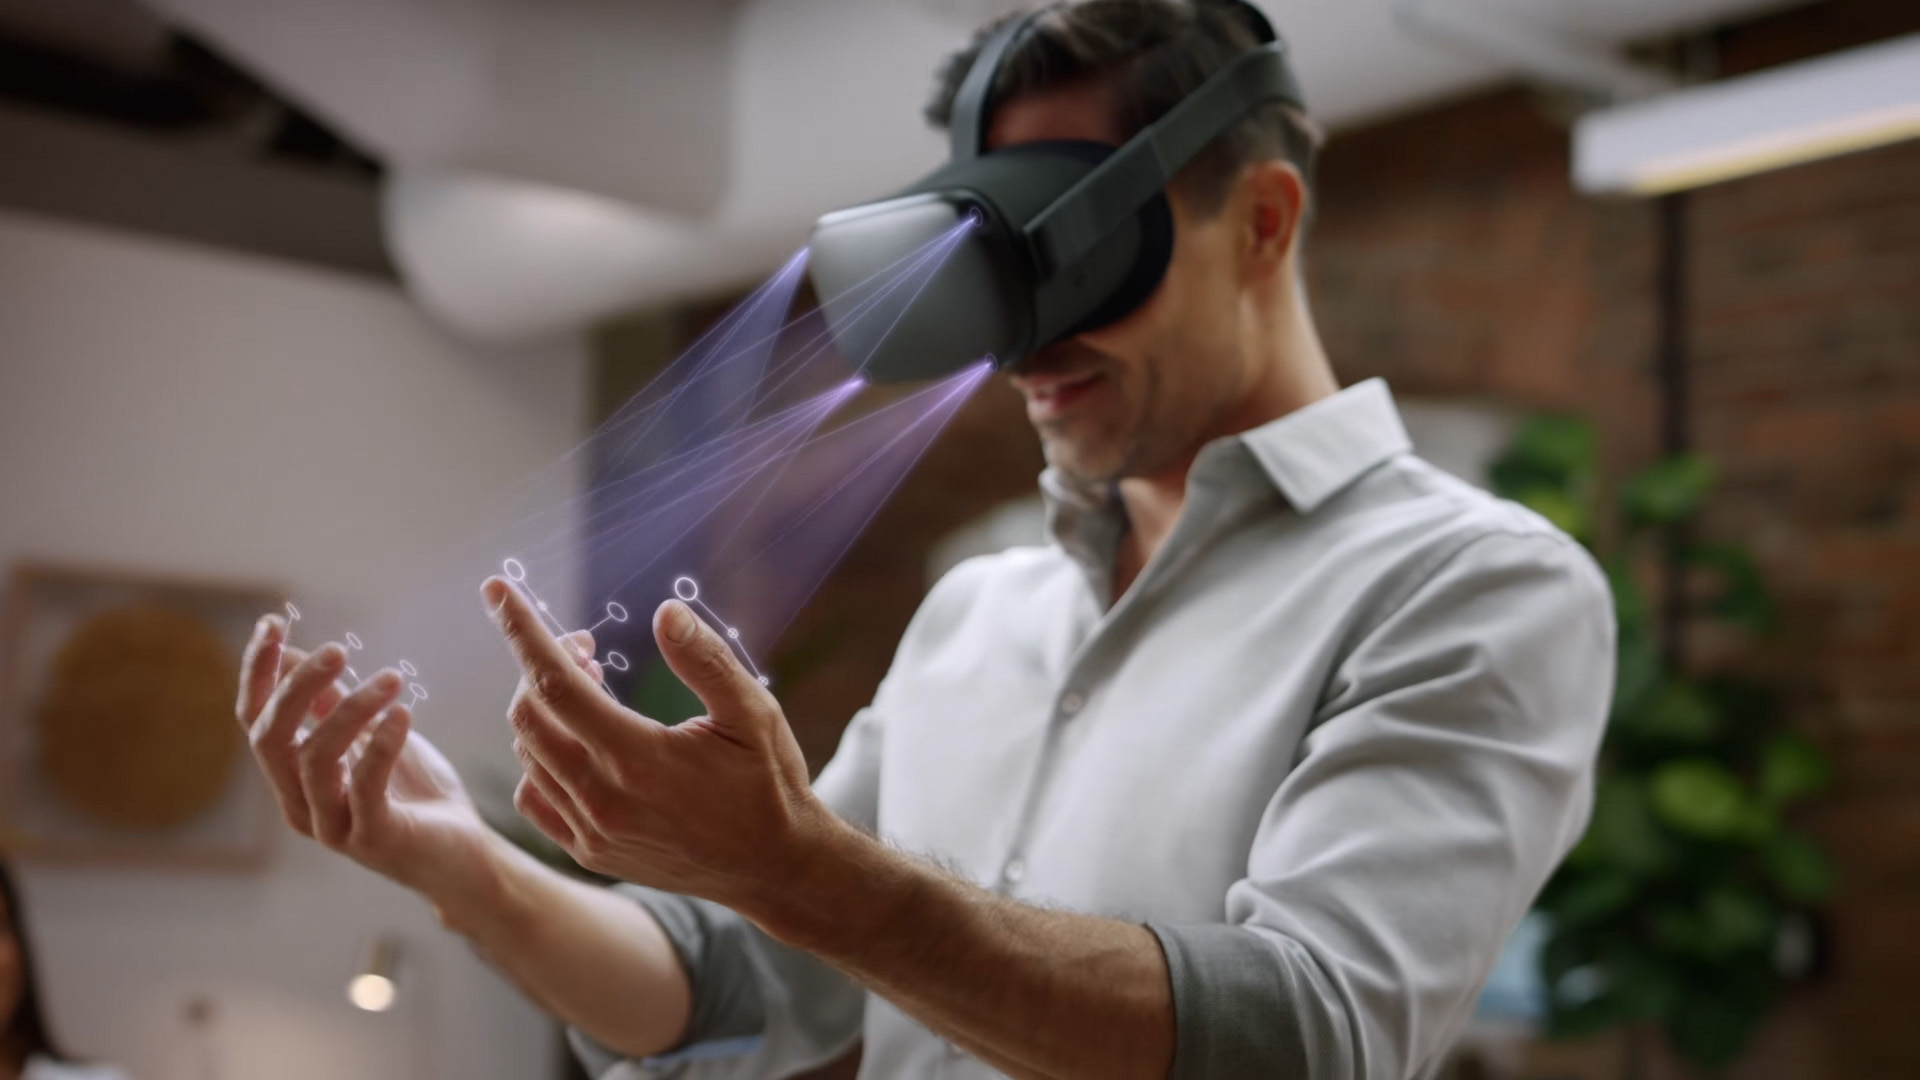 oculus_quest_connect6_stills_06